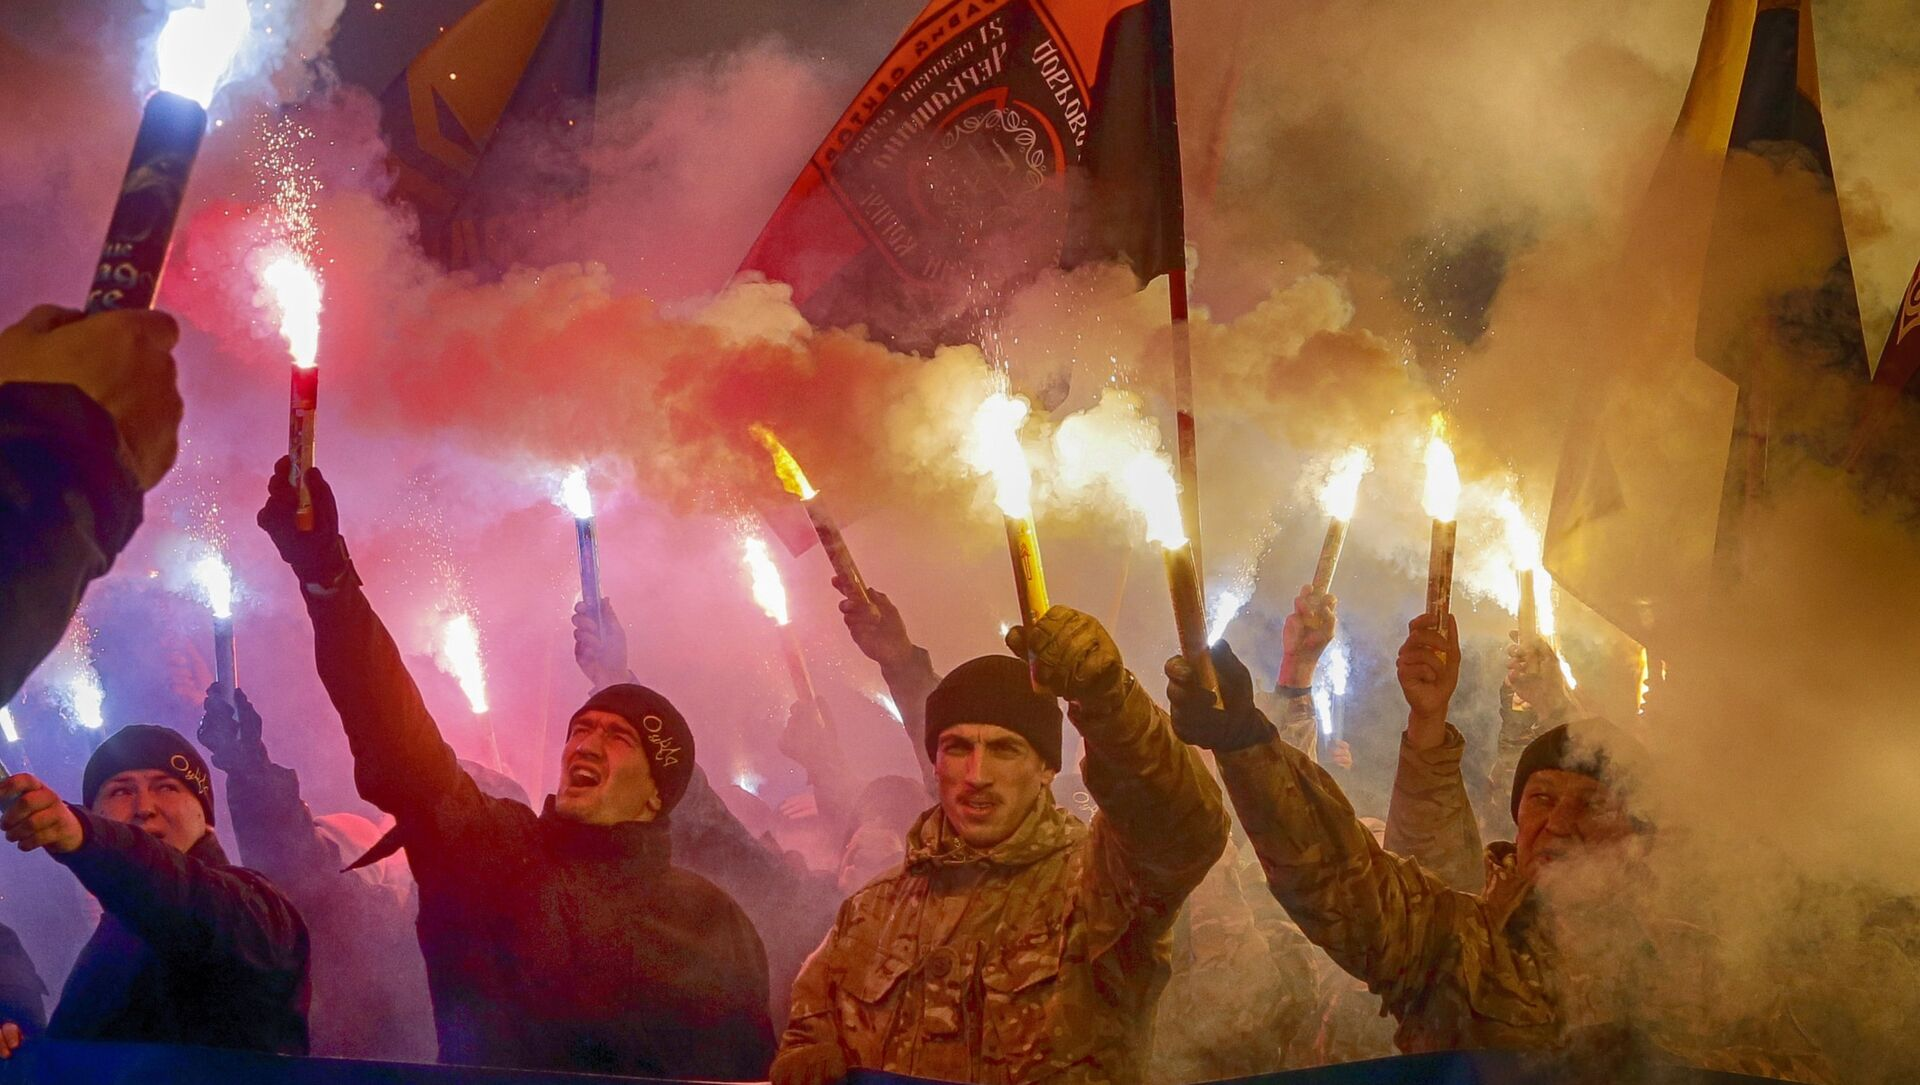 Volunteers of the Azov Civil Corps light flares during a rally marking Fatherland Defender Day in Kiev, Ukraine, Friday, Oct. 14, 2016.  - Sputnik France, 1920, 24.07.2021